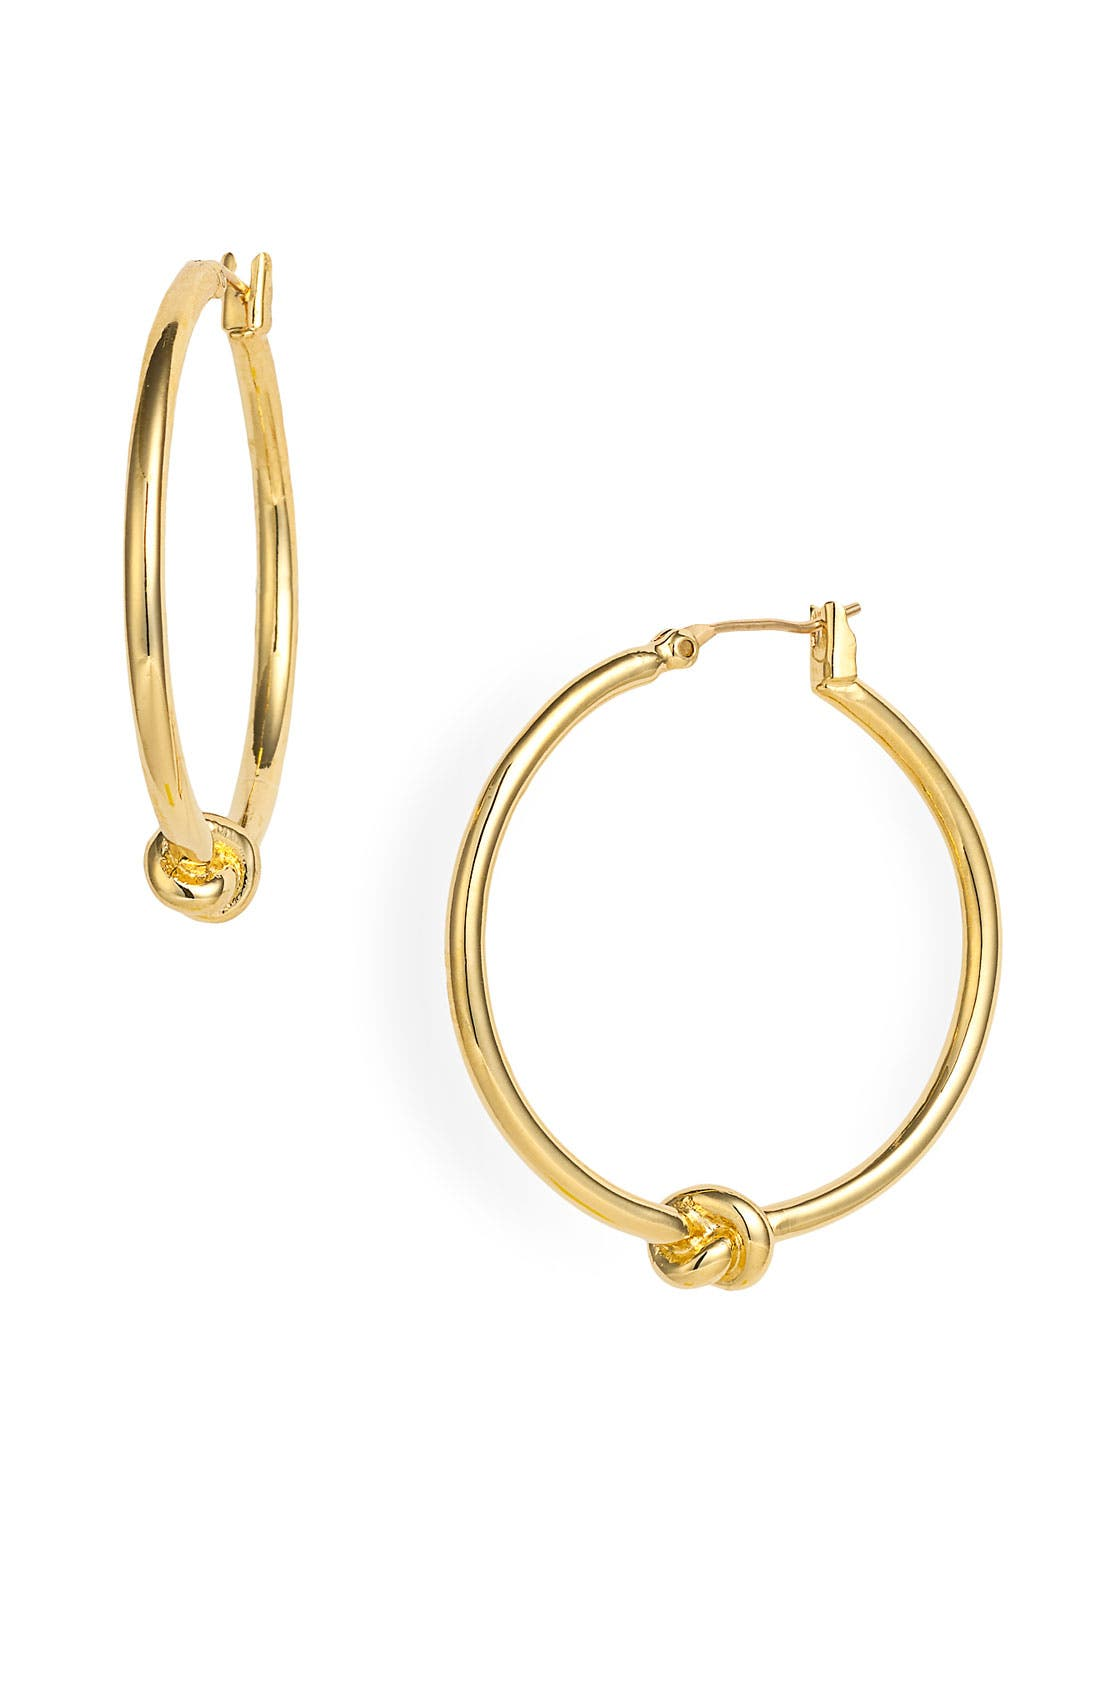 Alternate Image 1 Selected - kate spade new york 'sailors knot' hoop earrings